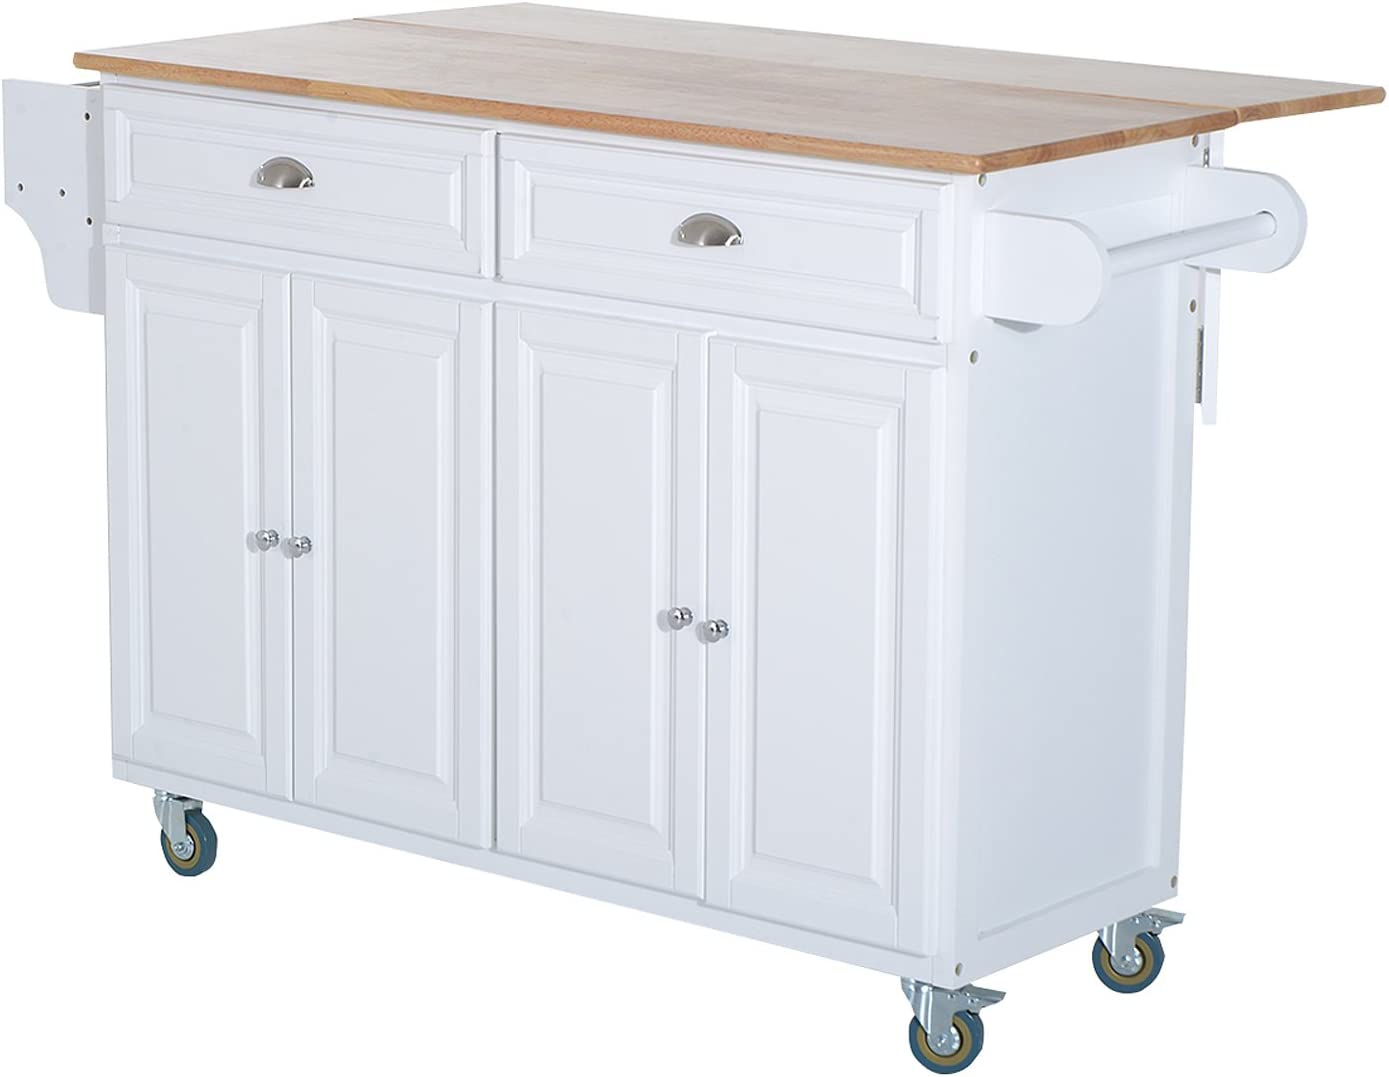 Amazon Com Homcom Rolling Kitchen Island On Wheels Ultility Cart With Drop Leaf And Rubber Wood Countertop Storage Drawer Door Cabinet White Kitchen Islands Carts